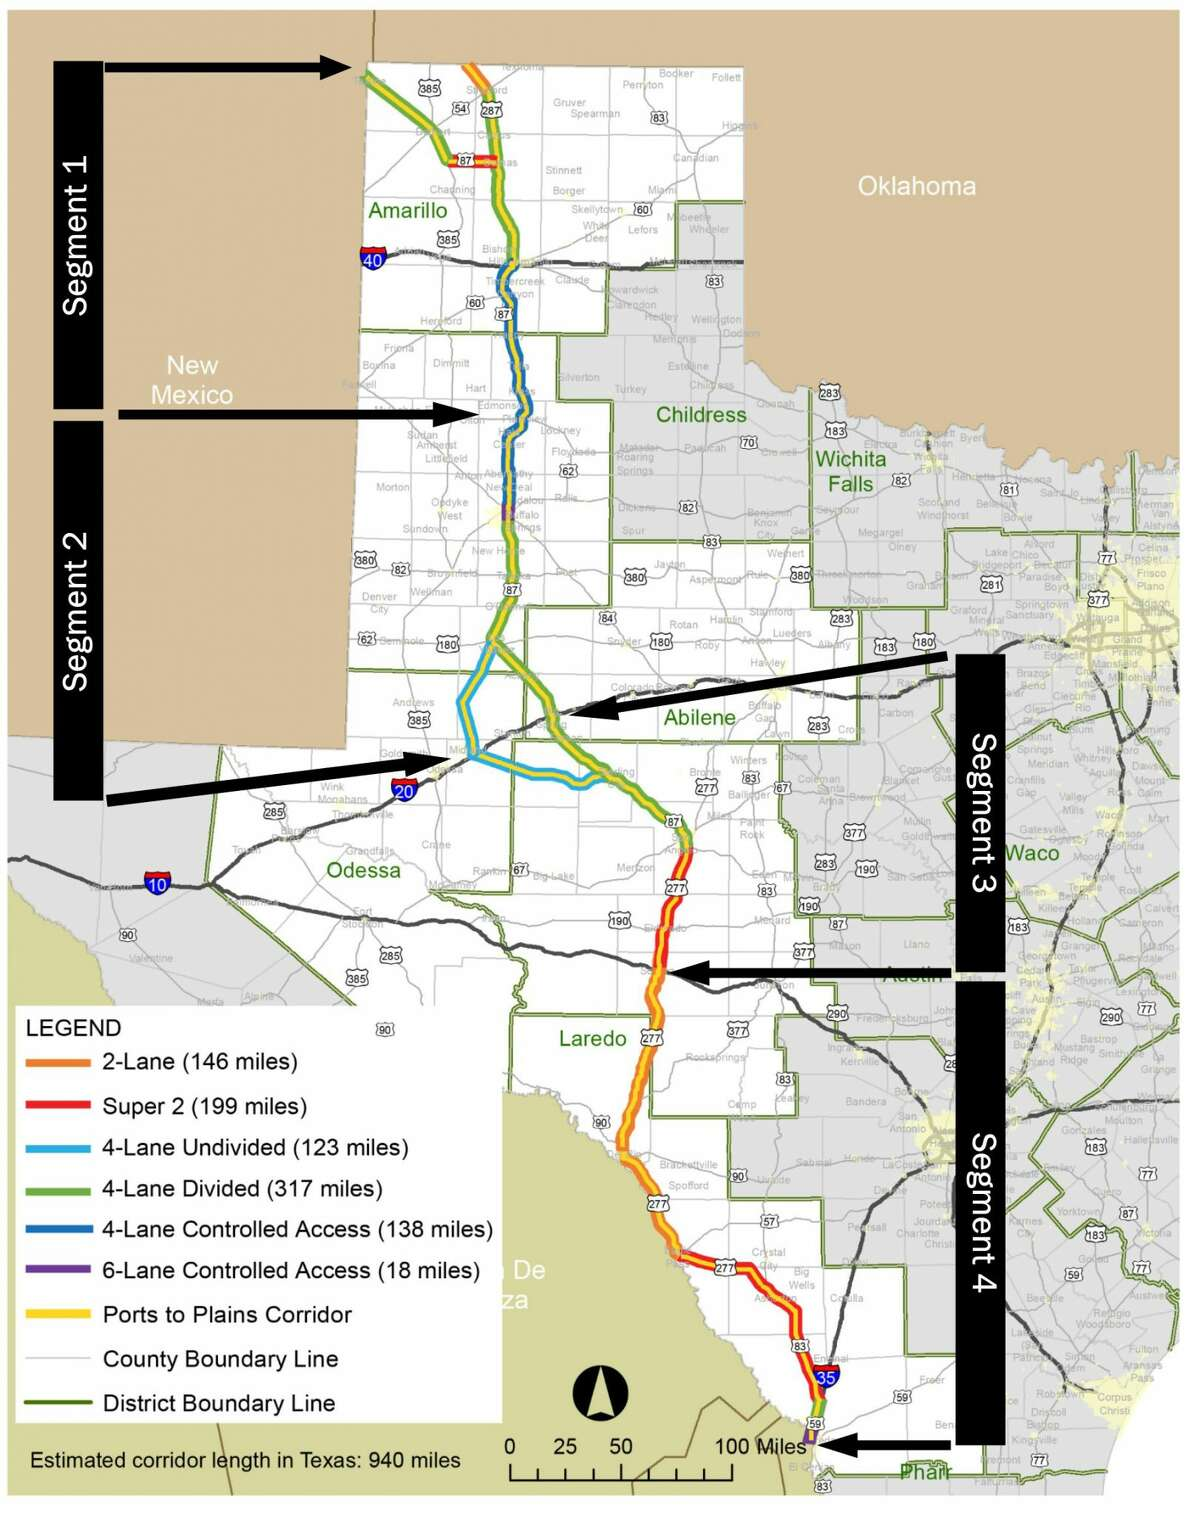 This map provided by the Ports-to-Plains Alliance shows the Ports-to-Plains corridor in Texas. Rep. Dustin Burrows of Lubbock has filed a bill to convert the entirety of the corridor into Interstate 27, which currently terminates south of Lubbock on US Highway 87.